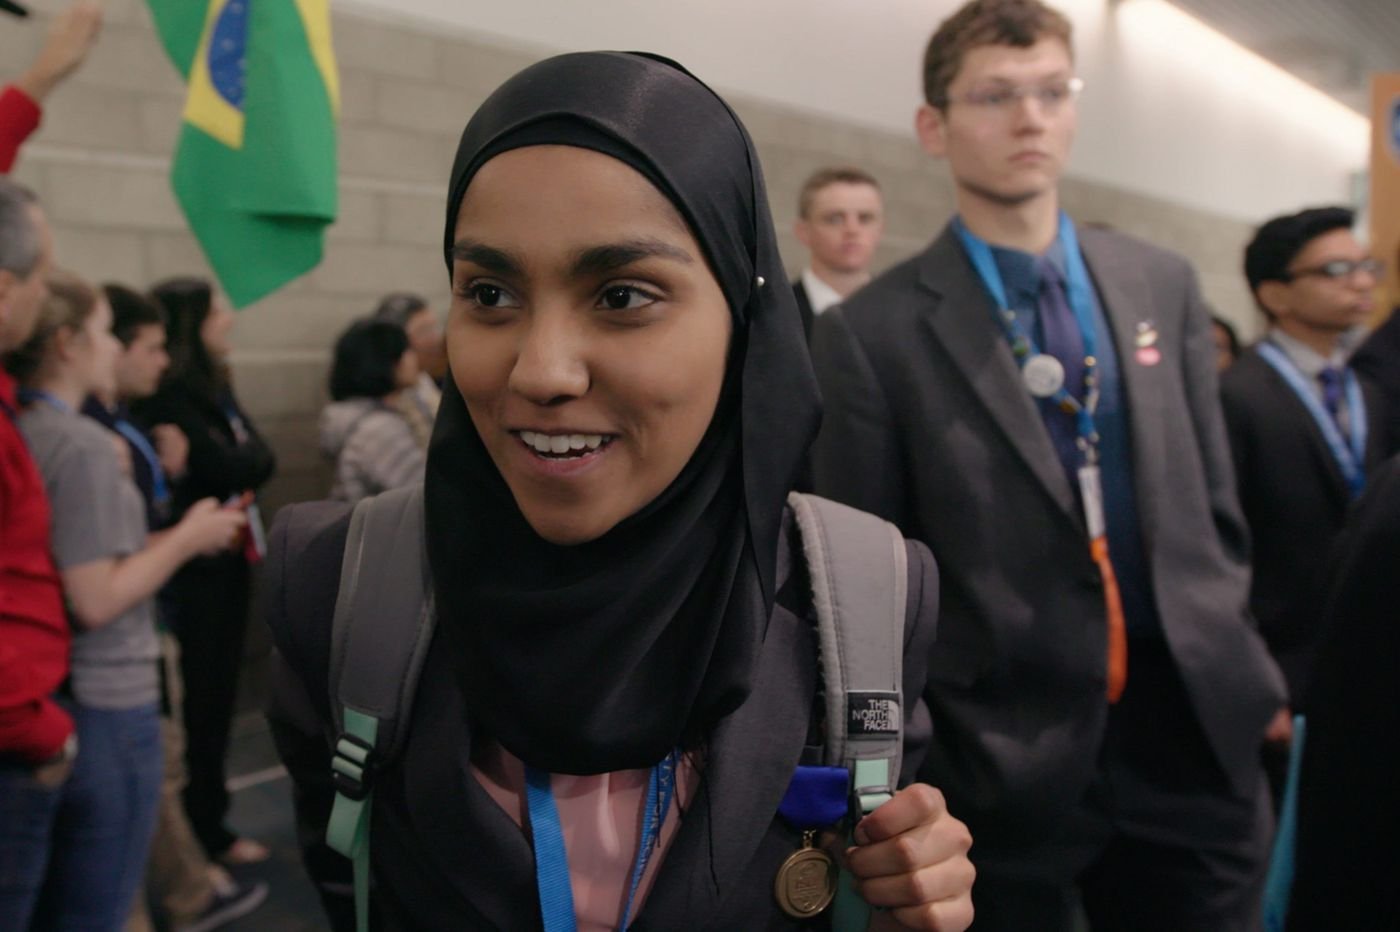 Students strive for STEM glory in the documentary 'Science Fair'